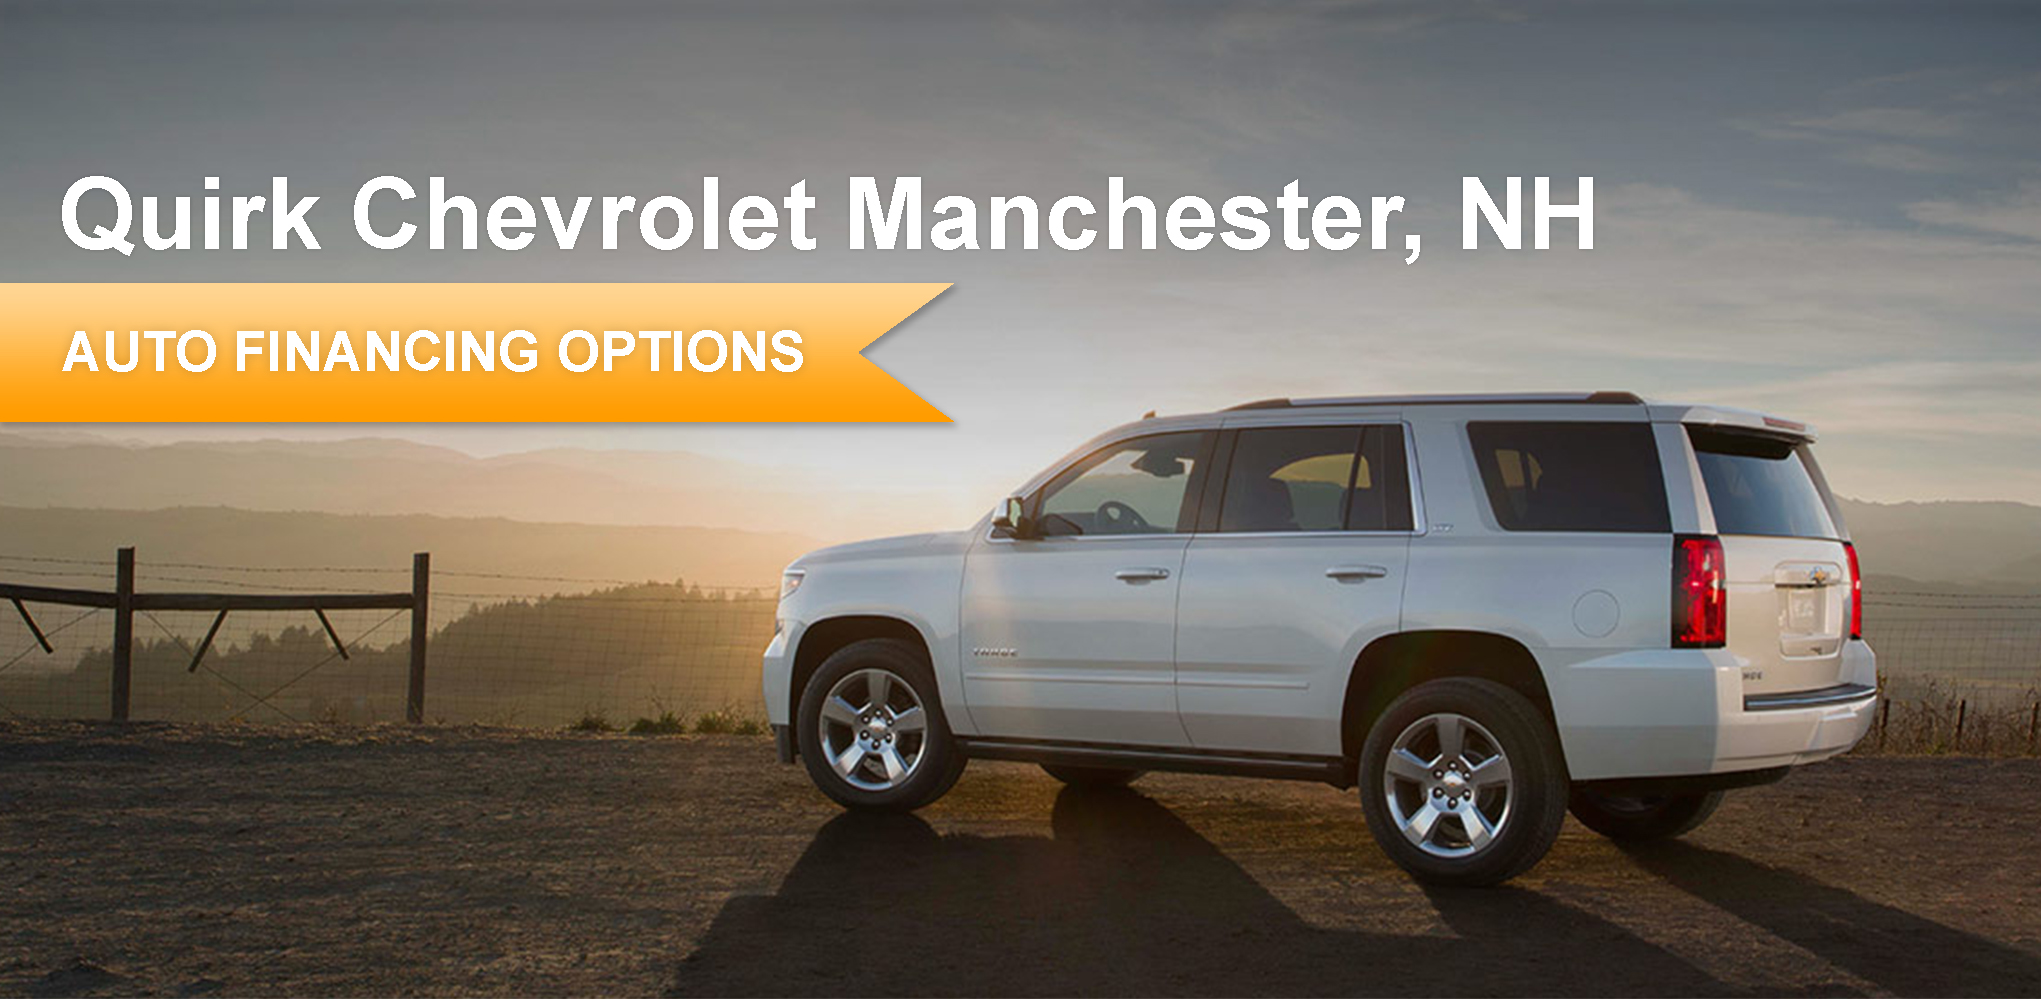 Wonderful New Chevrolet Financing | Quirk Chevrolet Manchester In NH